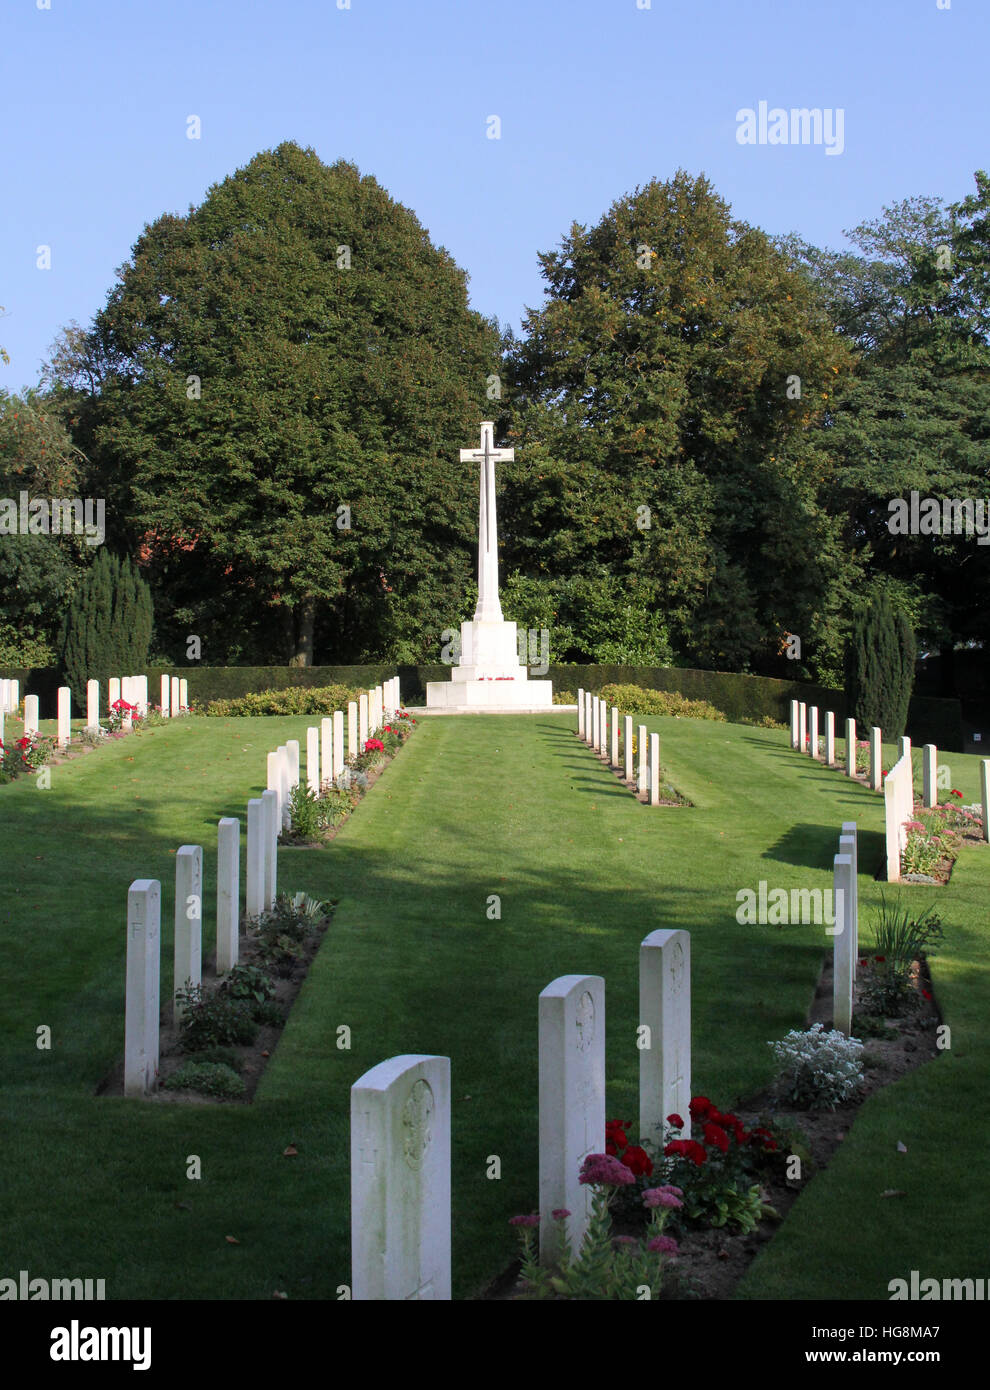 The Ramparts Cemetery in Ypres, Ieper, Belgium holds is the burial ground for 198 soldiers who died in the First Stock Photo